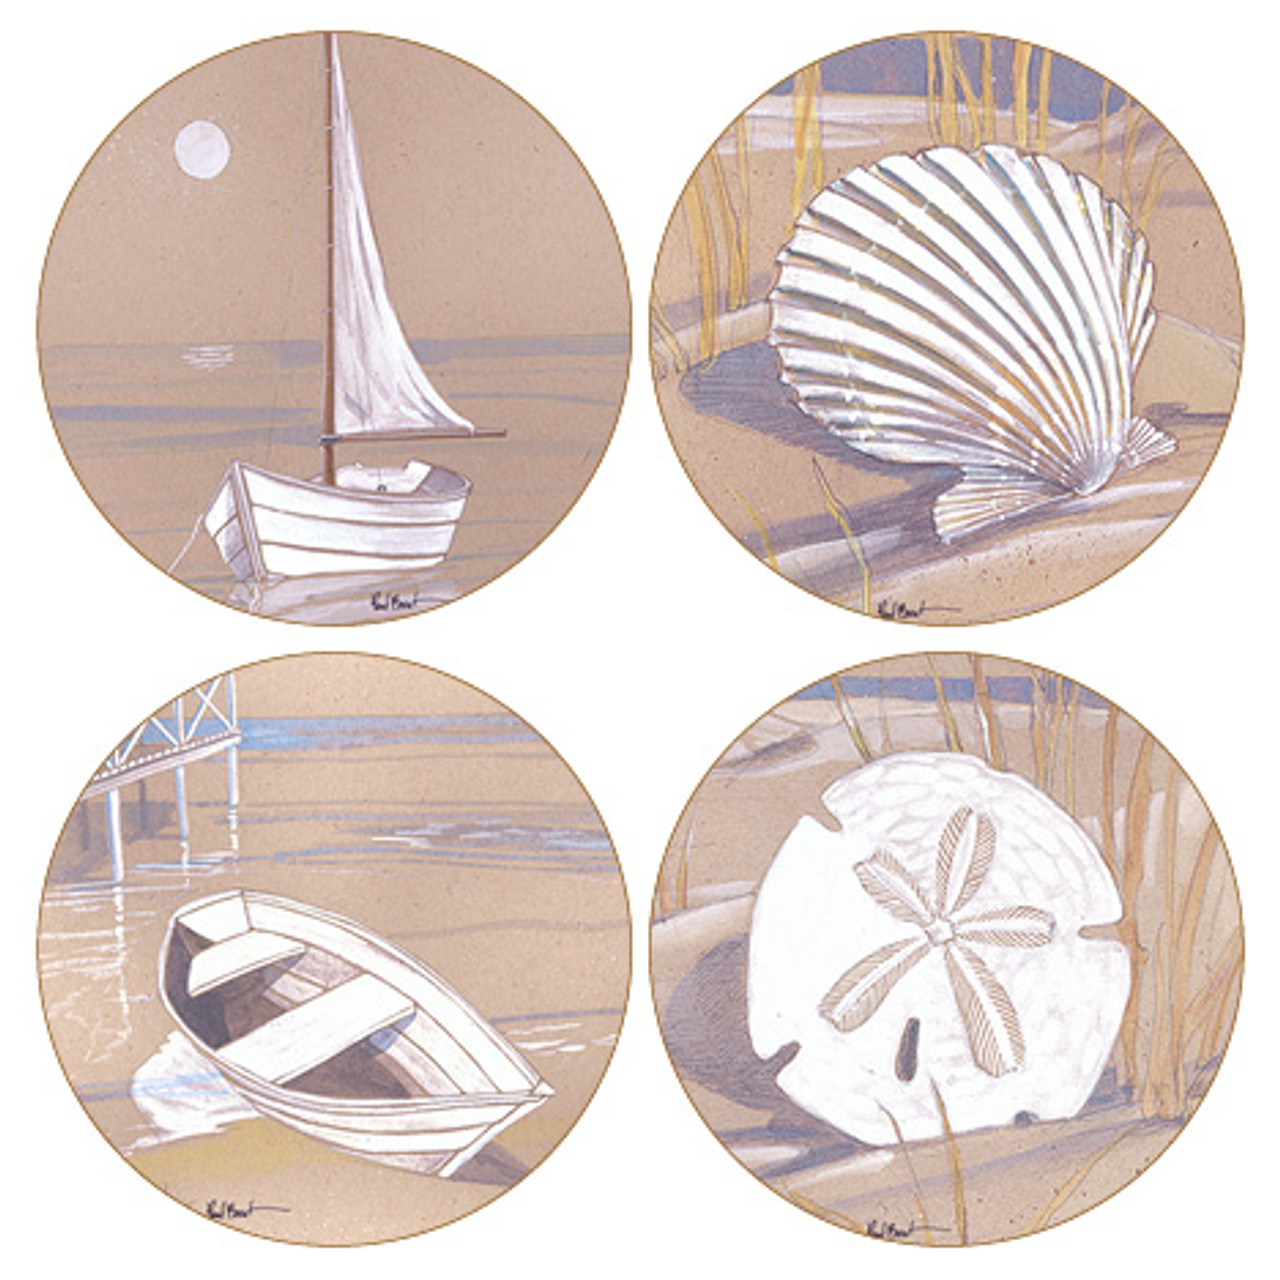 Boats and Shells Round Sandstone Coasters